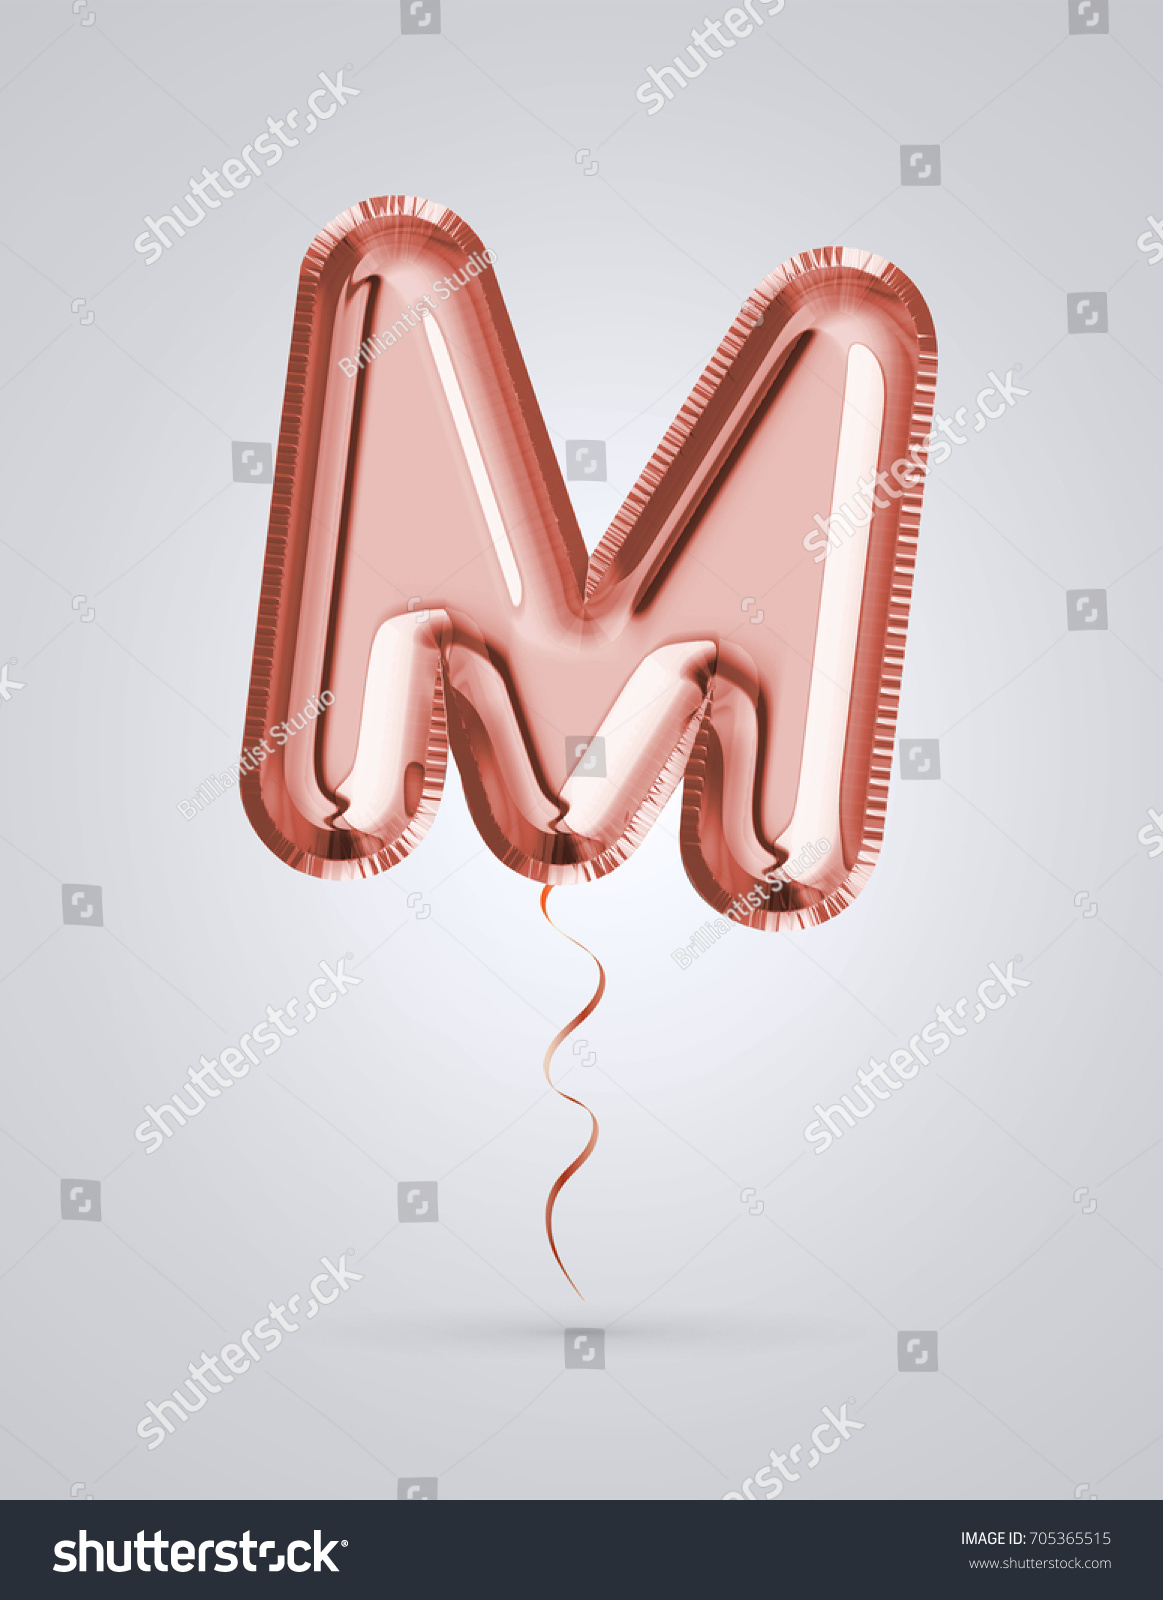 Brilliant Balloon Font Letter M Made Stock Illustration 705365515 ...